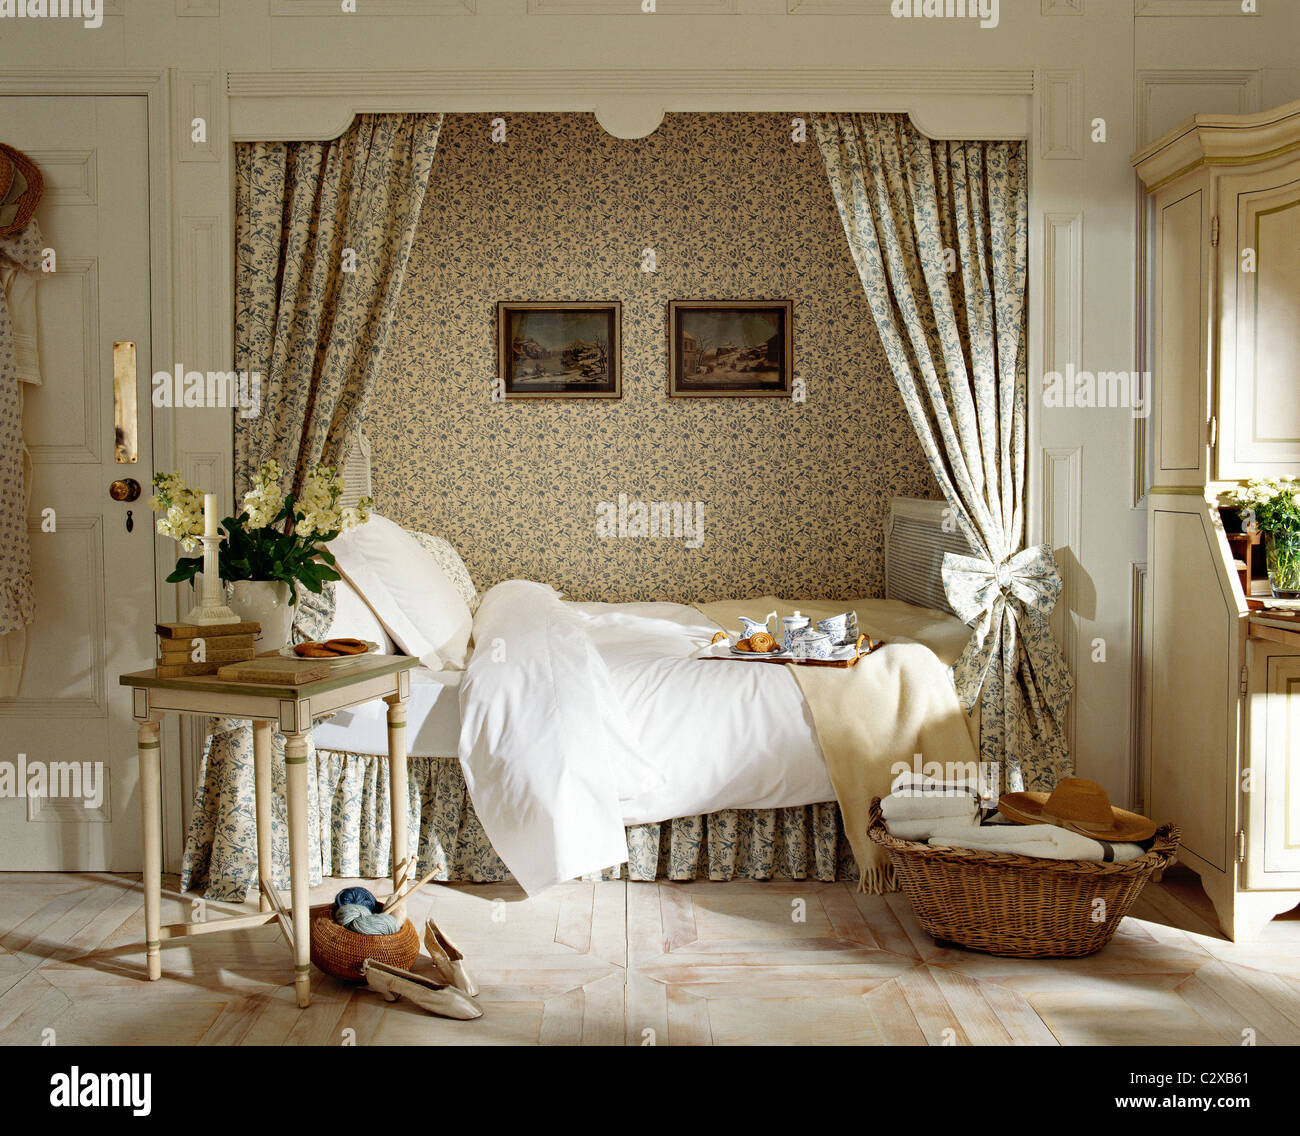 double bed set in recess with patterned curtains and wallpaper